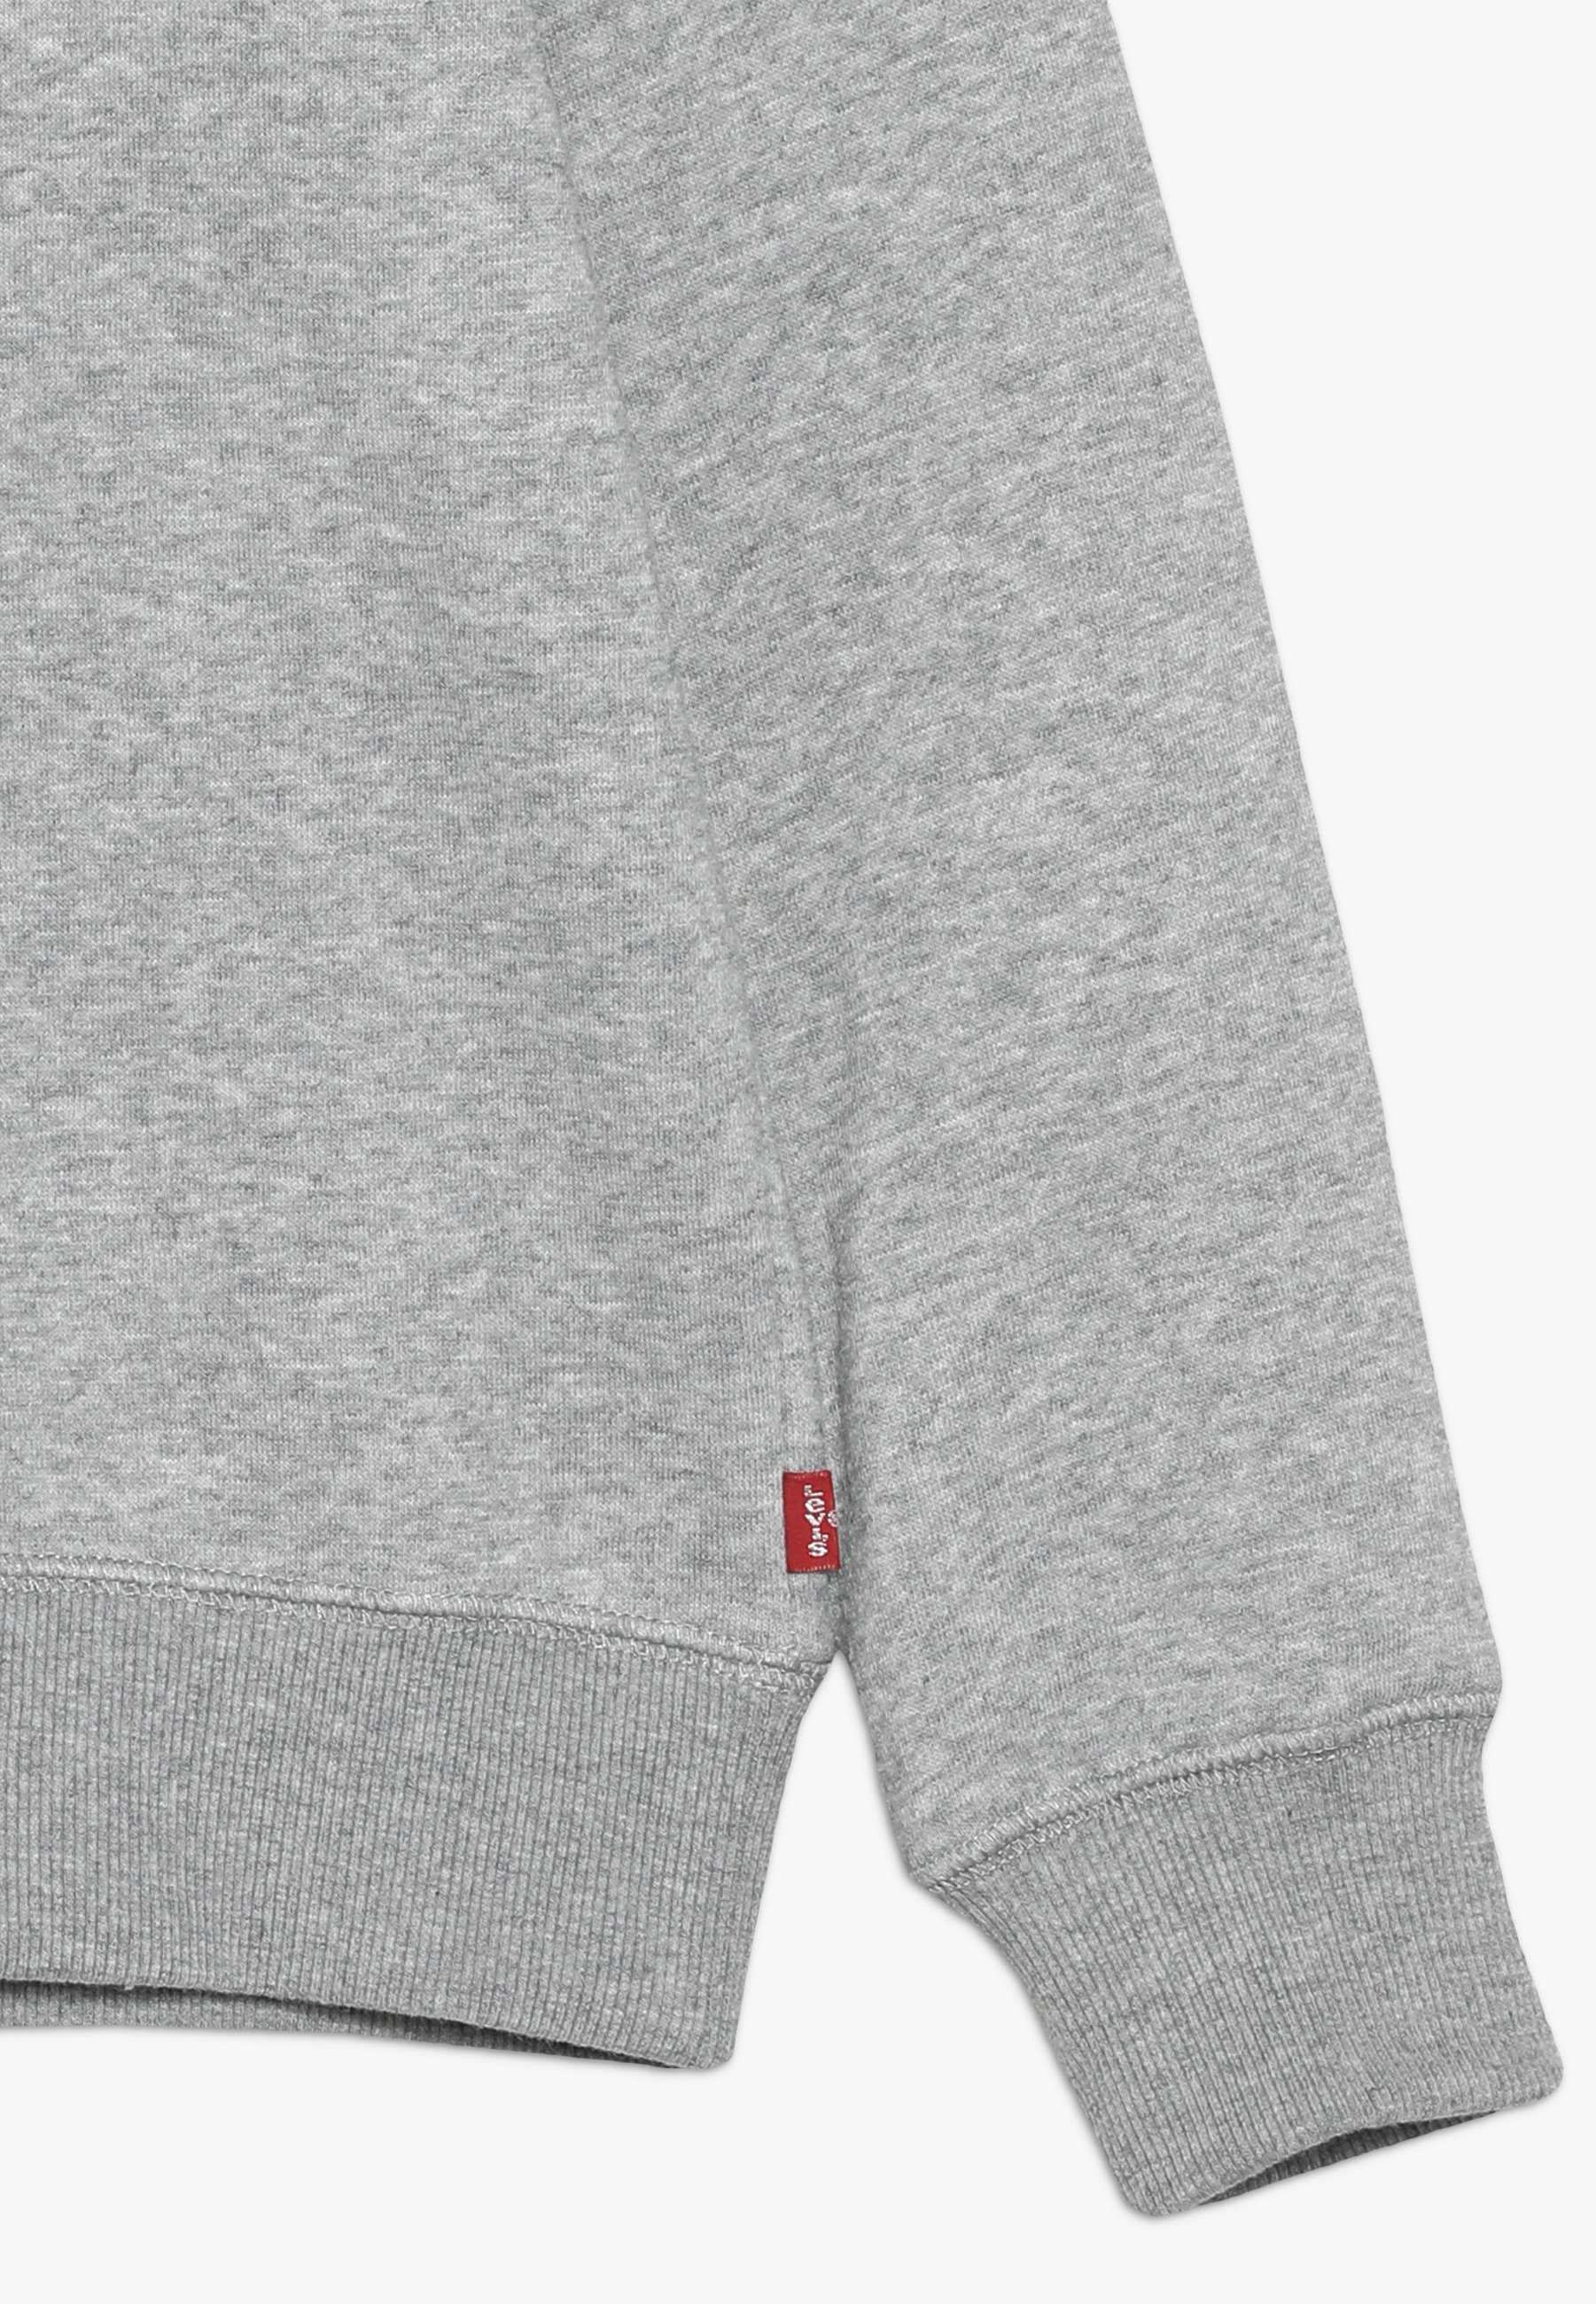 For Cheap Discount Men's Clothing Levi's® BATWING CREWNECK Sweatshirt grey heather cmClRKjoE gSqnUduj2